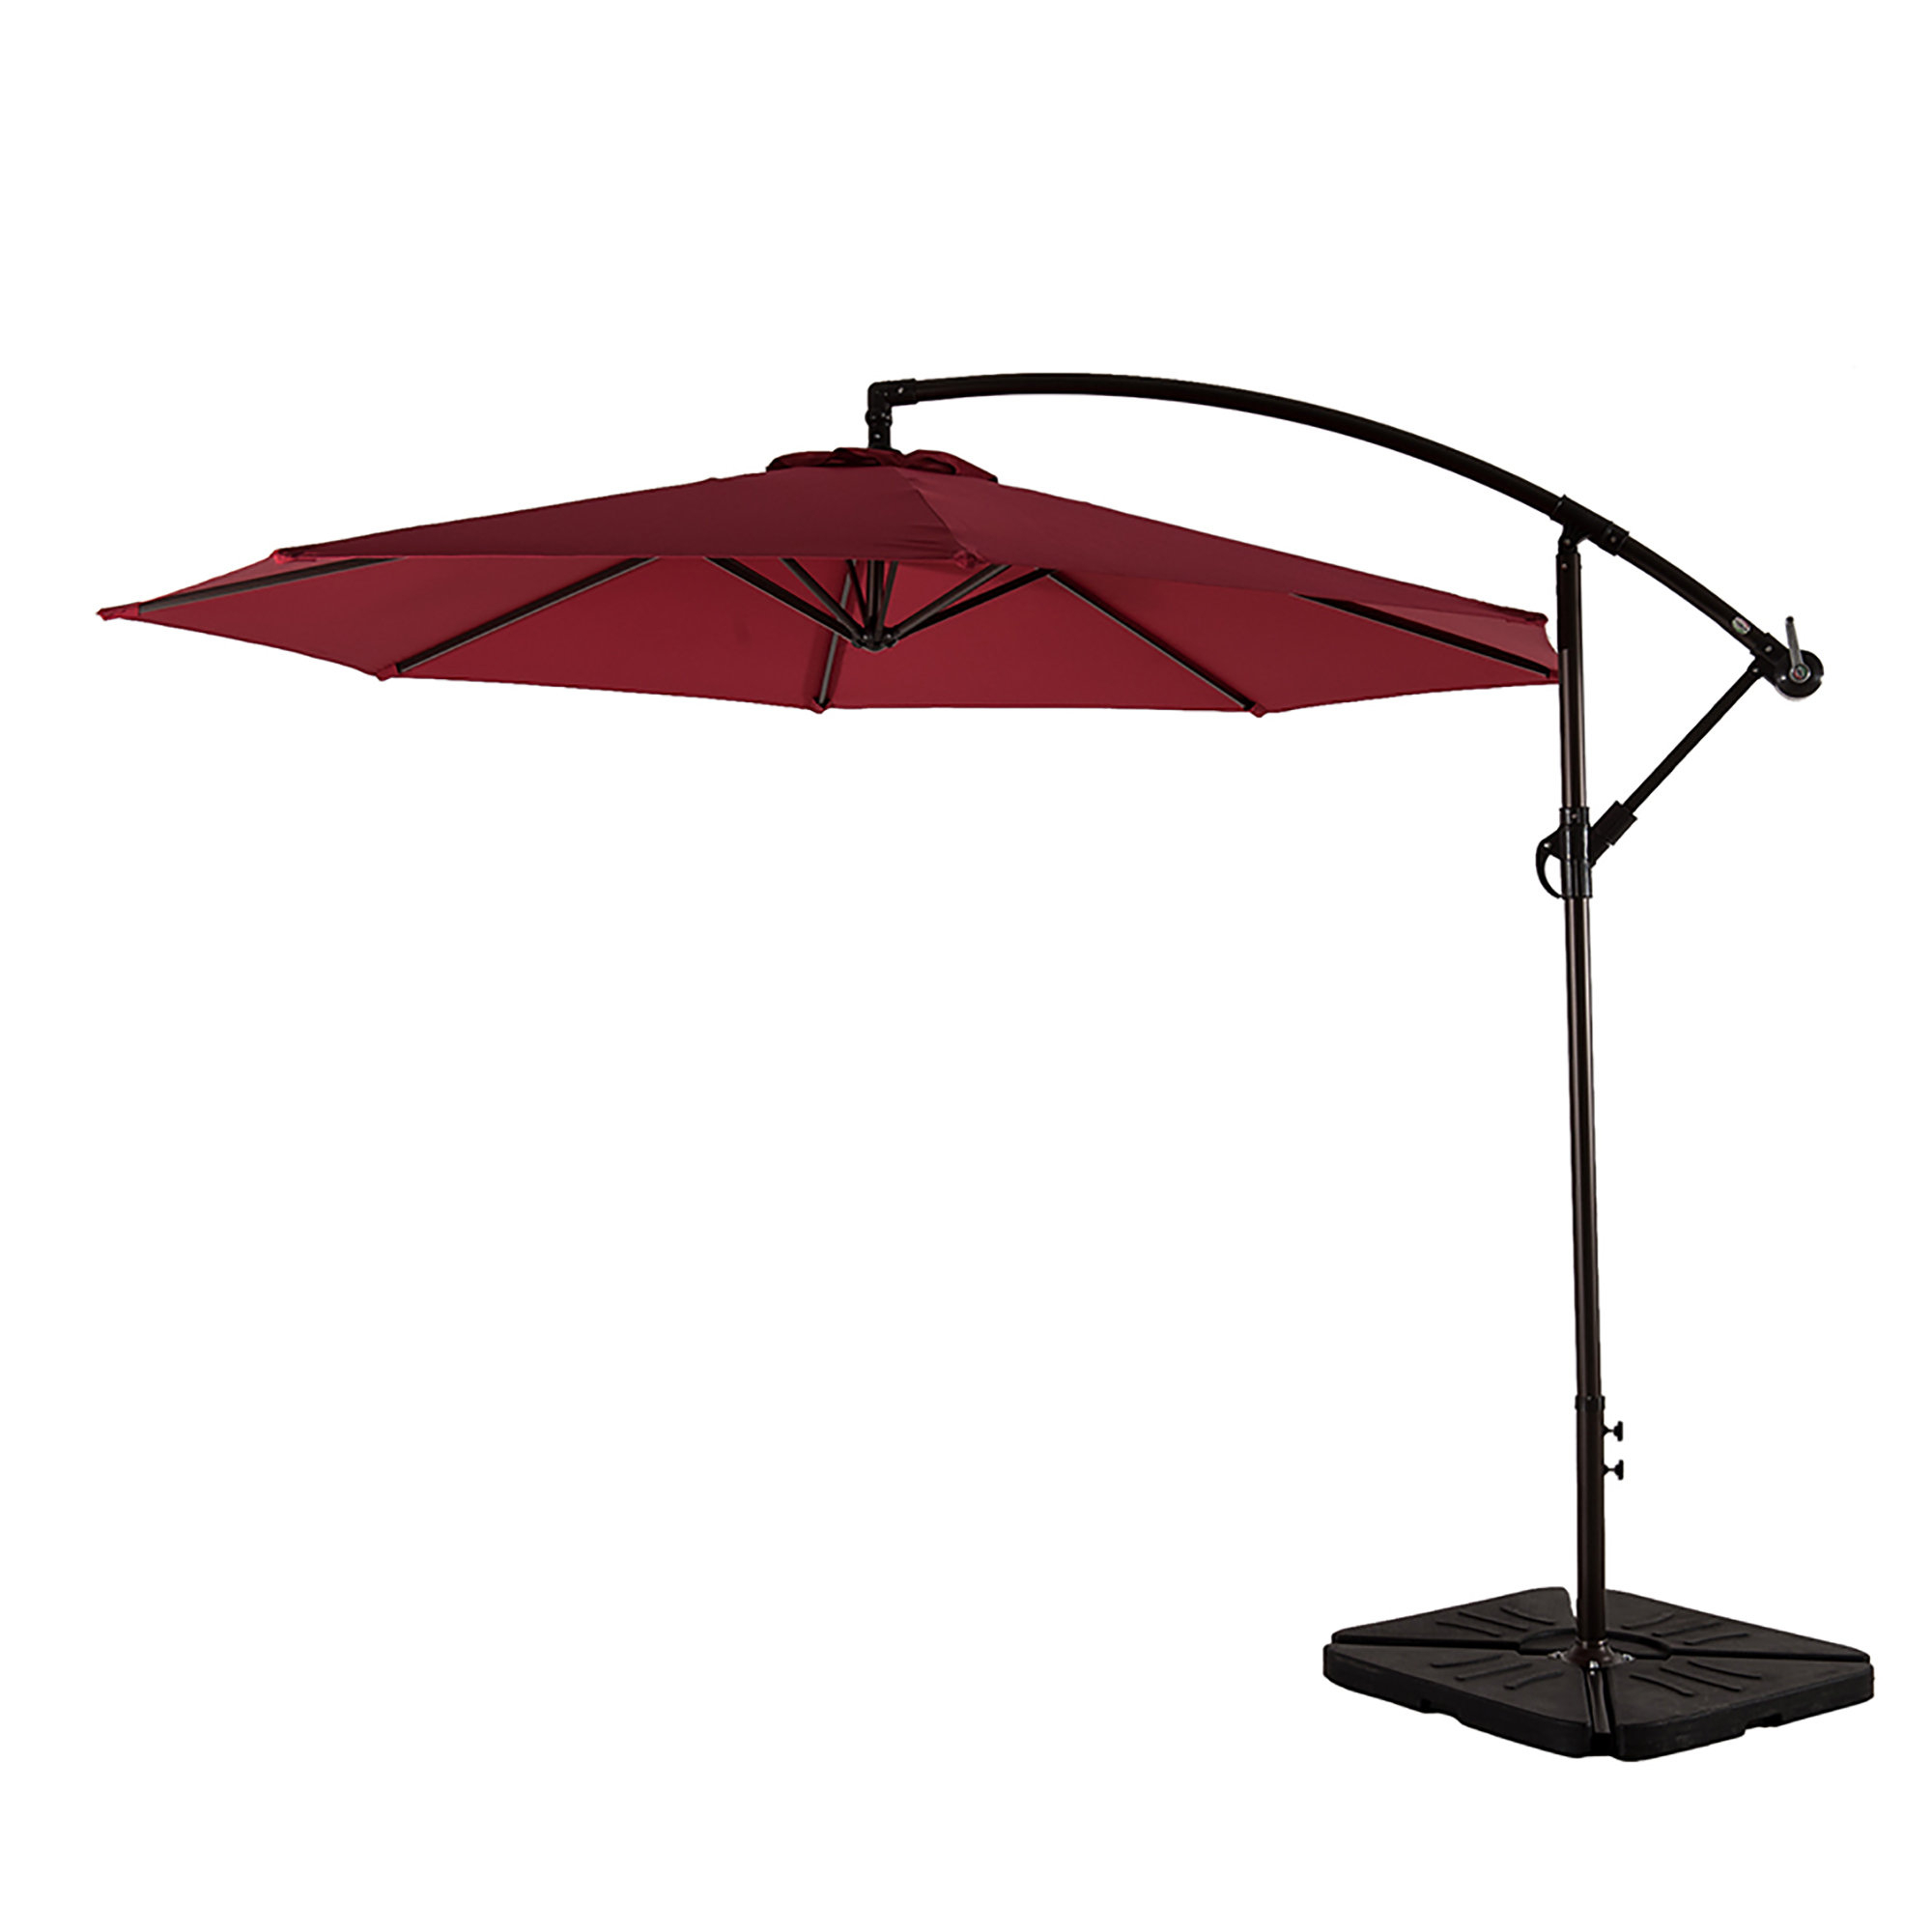 Karr 10' Cantilever Umbrella With Regard To Well Known Gribble 3Cantilever Umbrellas (View 13 of 20)